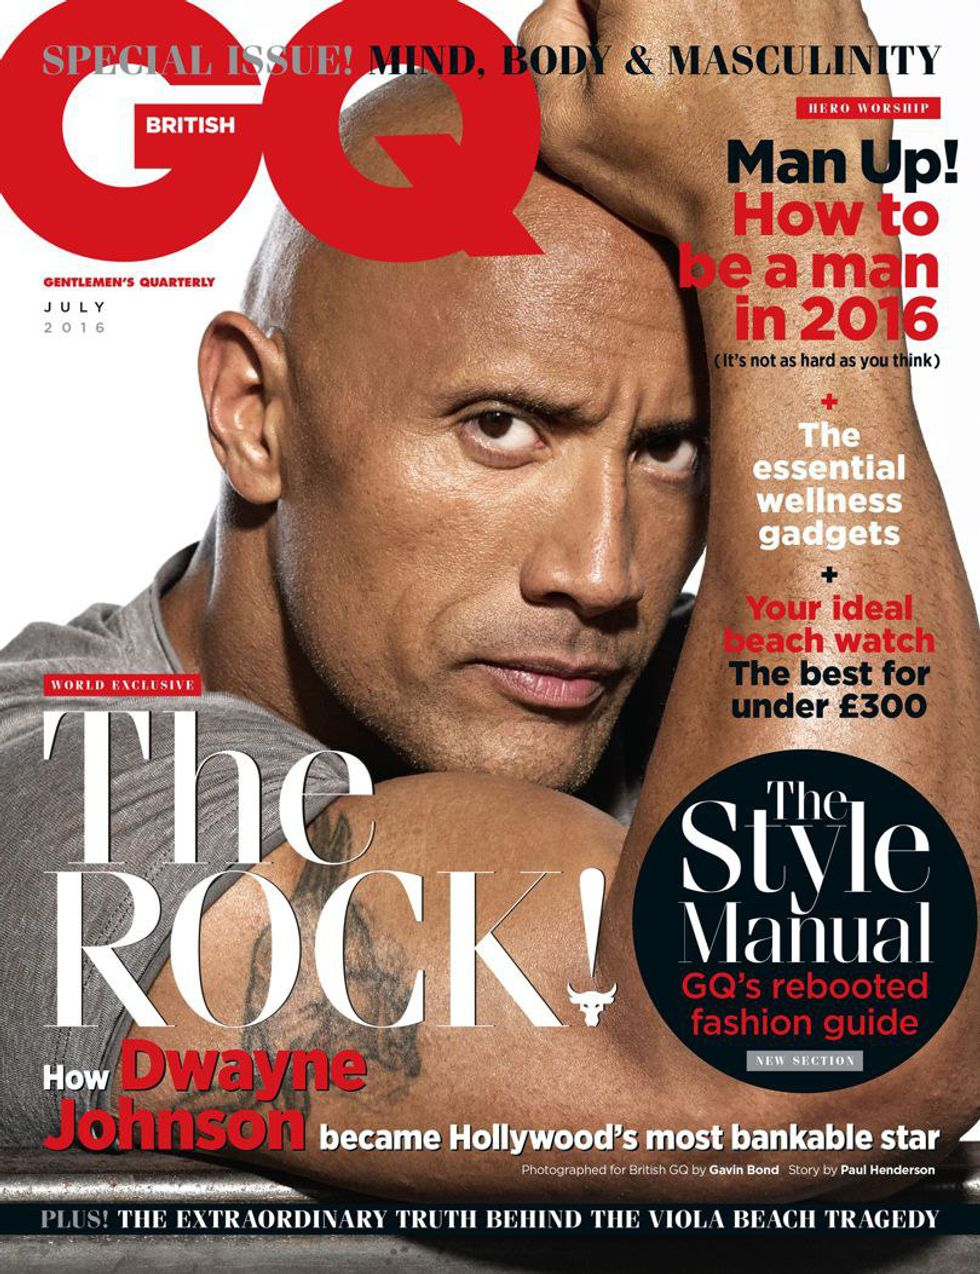 Does Dwayne The Rock Johnson Have A Future In Politics